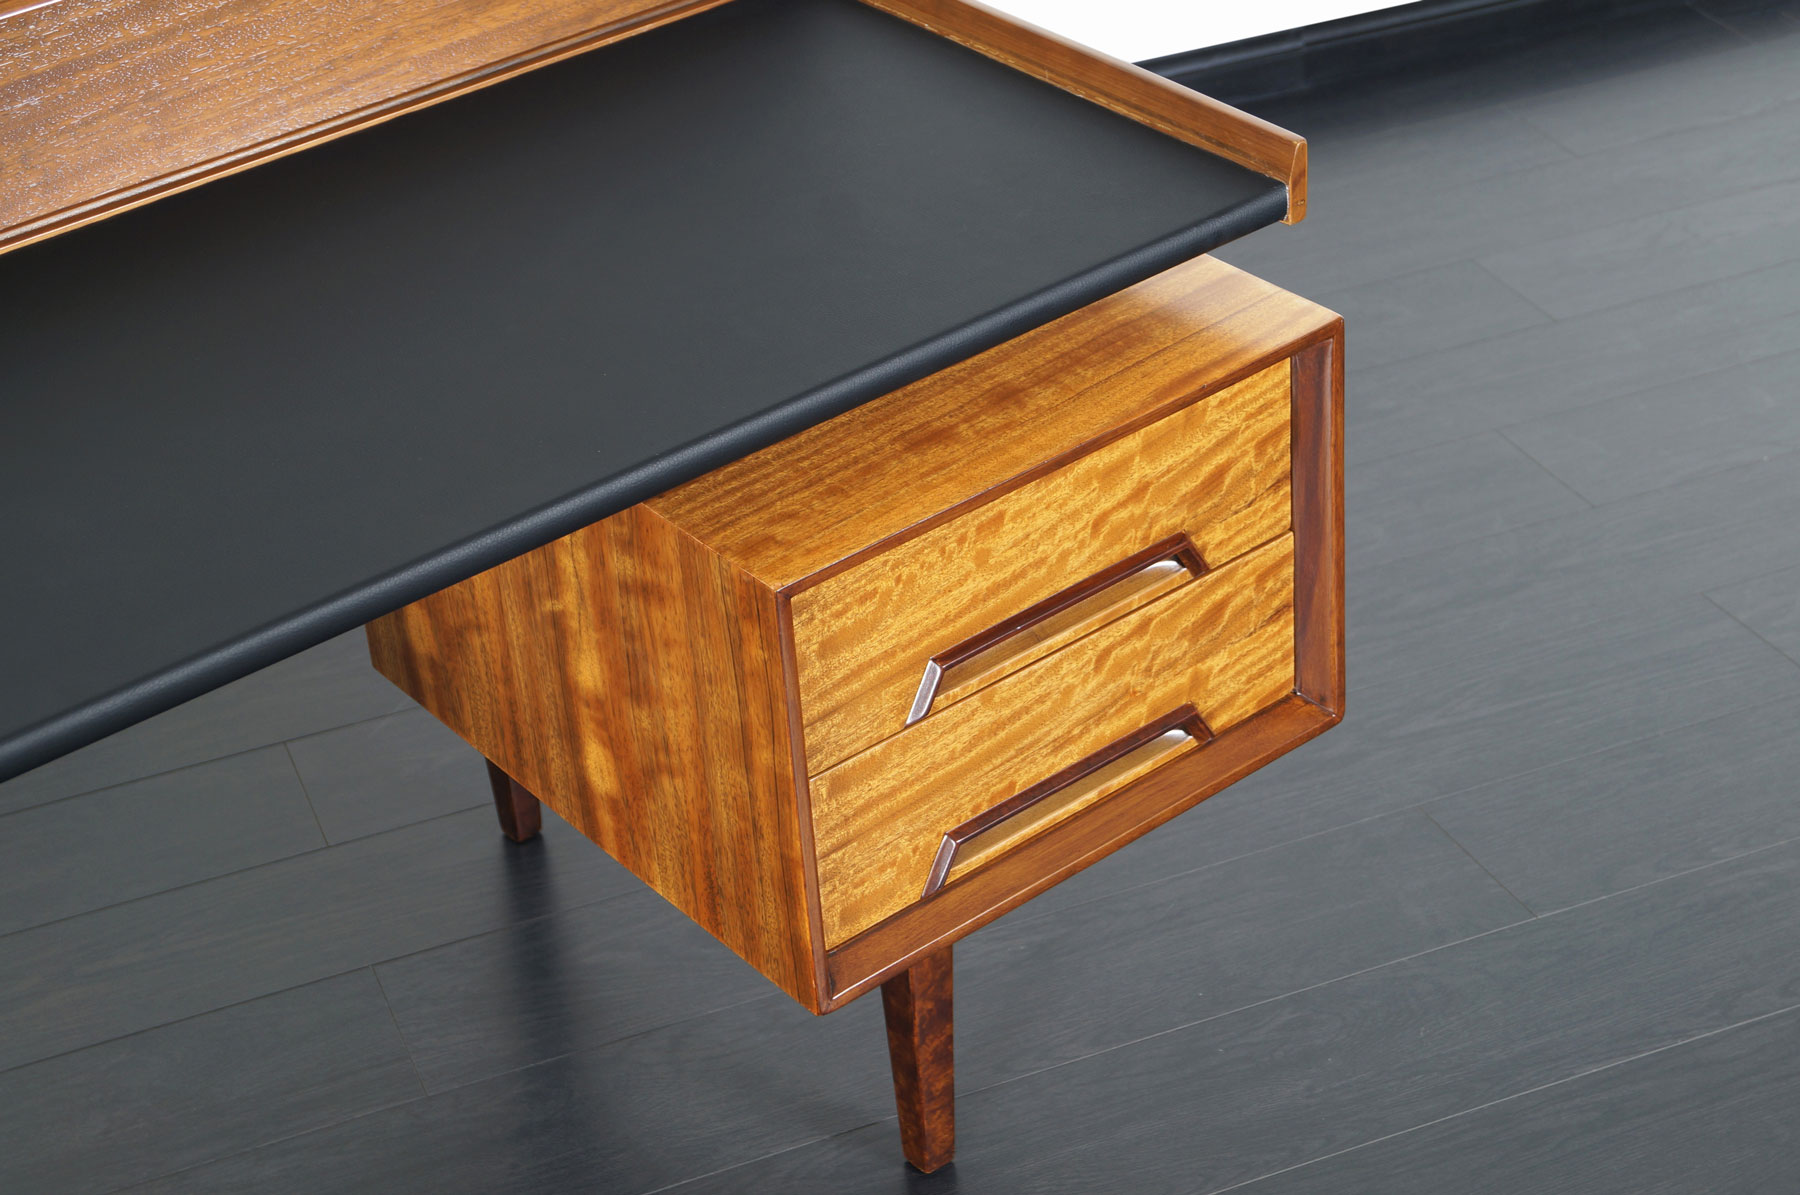 Drexel Perspective Floating Top Desk by Milo Baughman